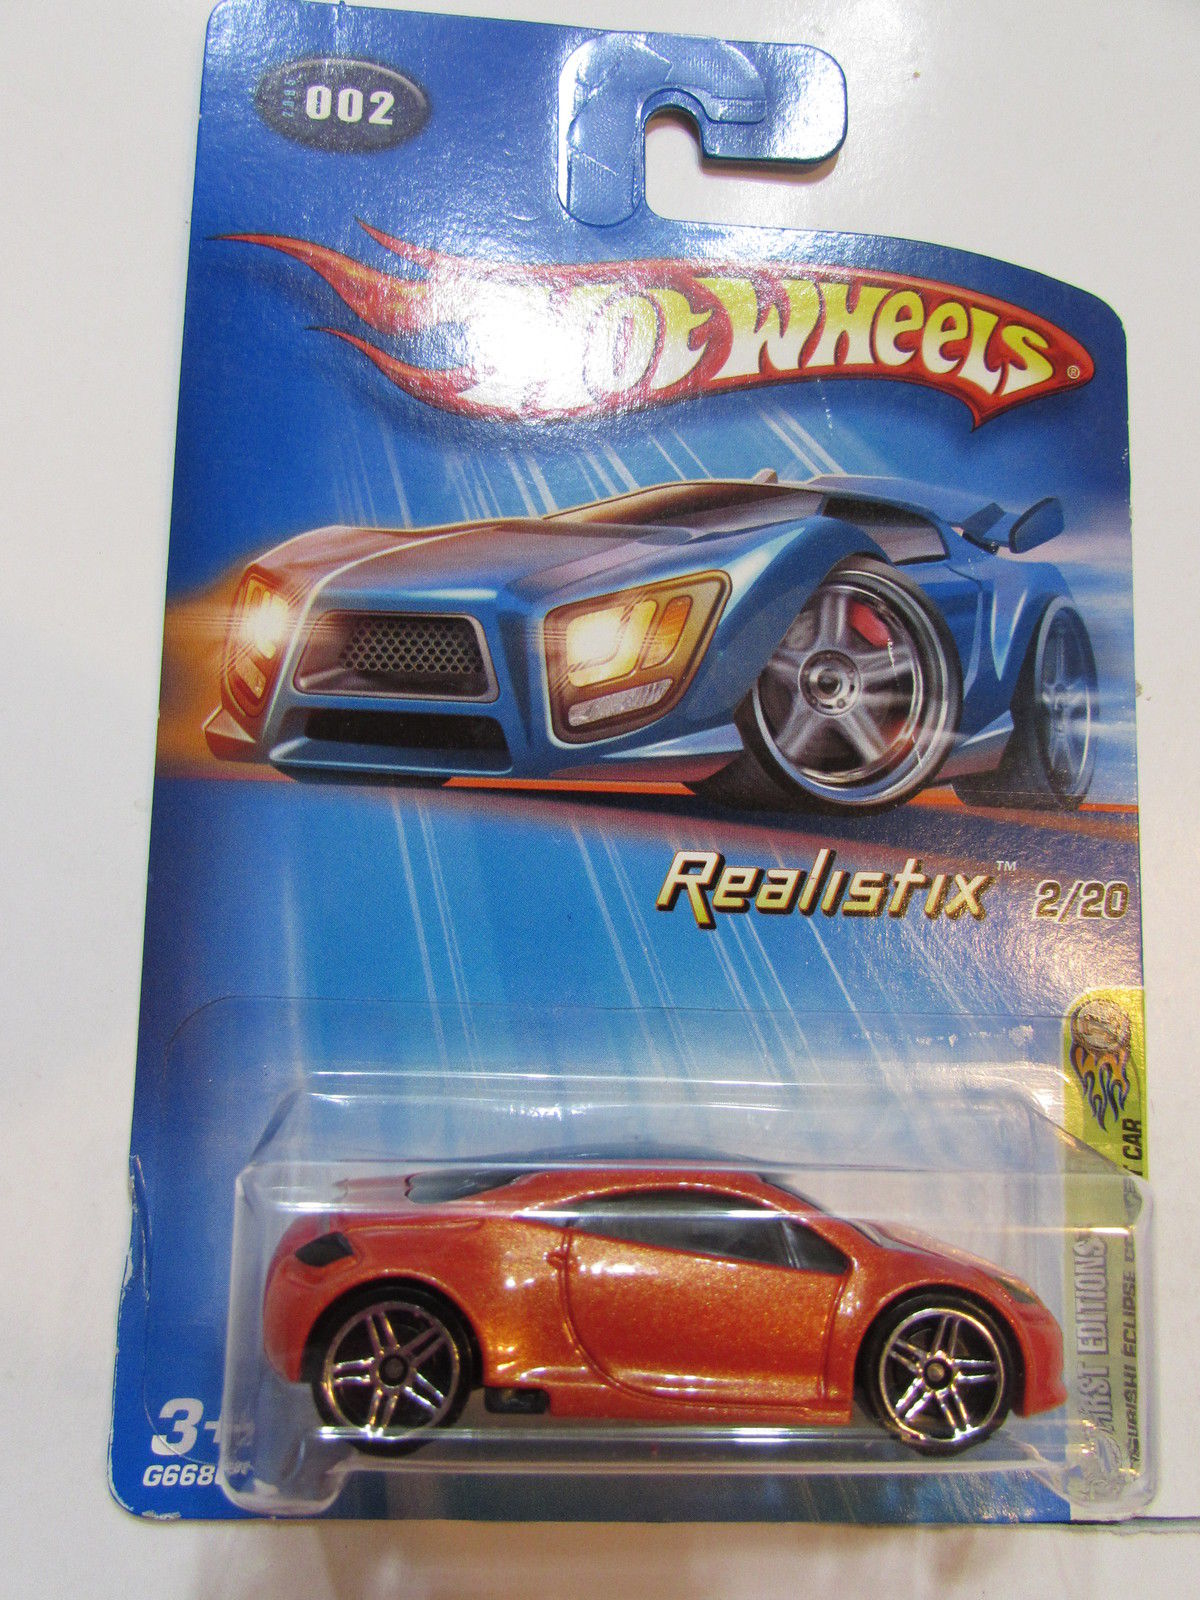 HOT WHEELS 2005 REALISTIX MITSUBISHI ECLIPSE CONCEPT CAR #002 W/ PR5 WHEELS